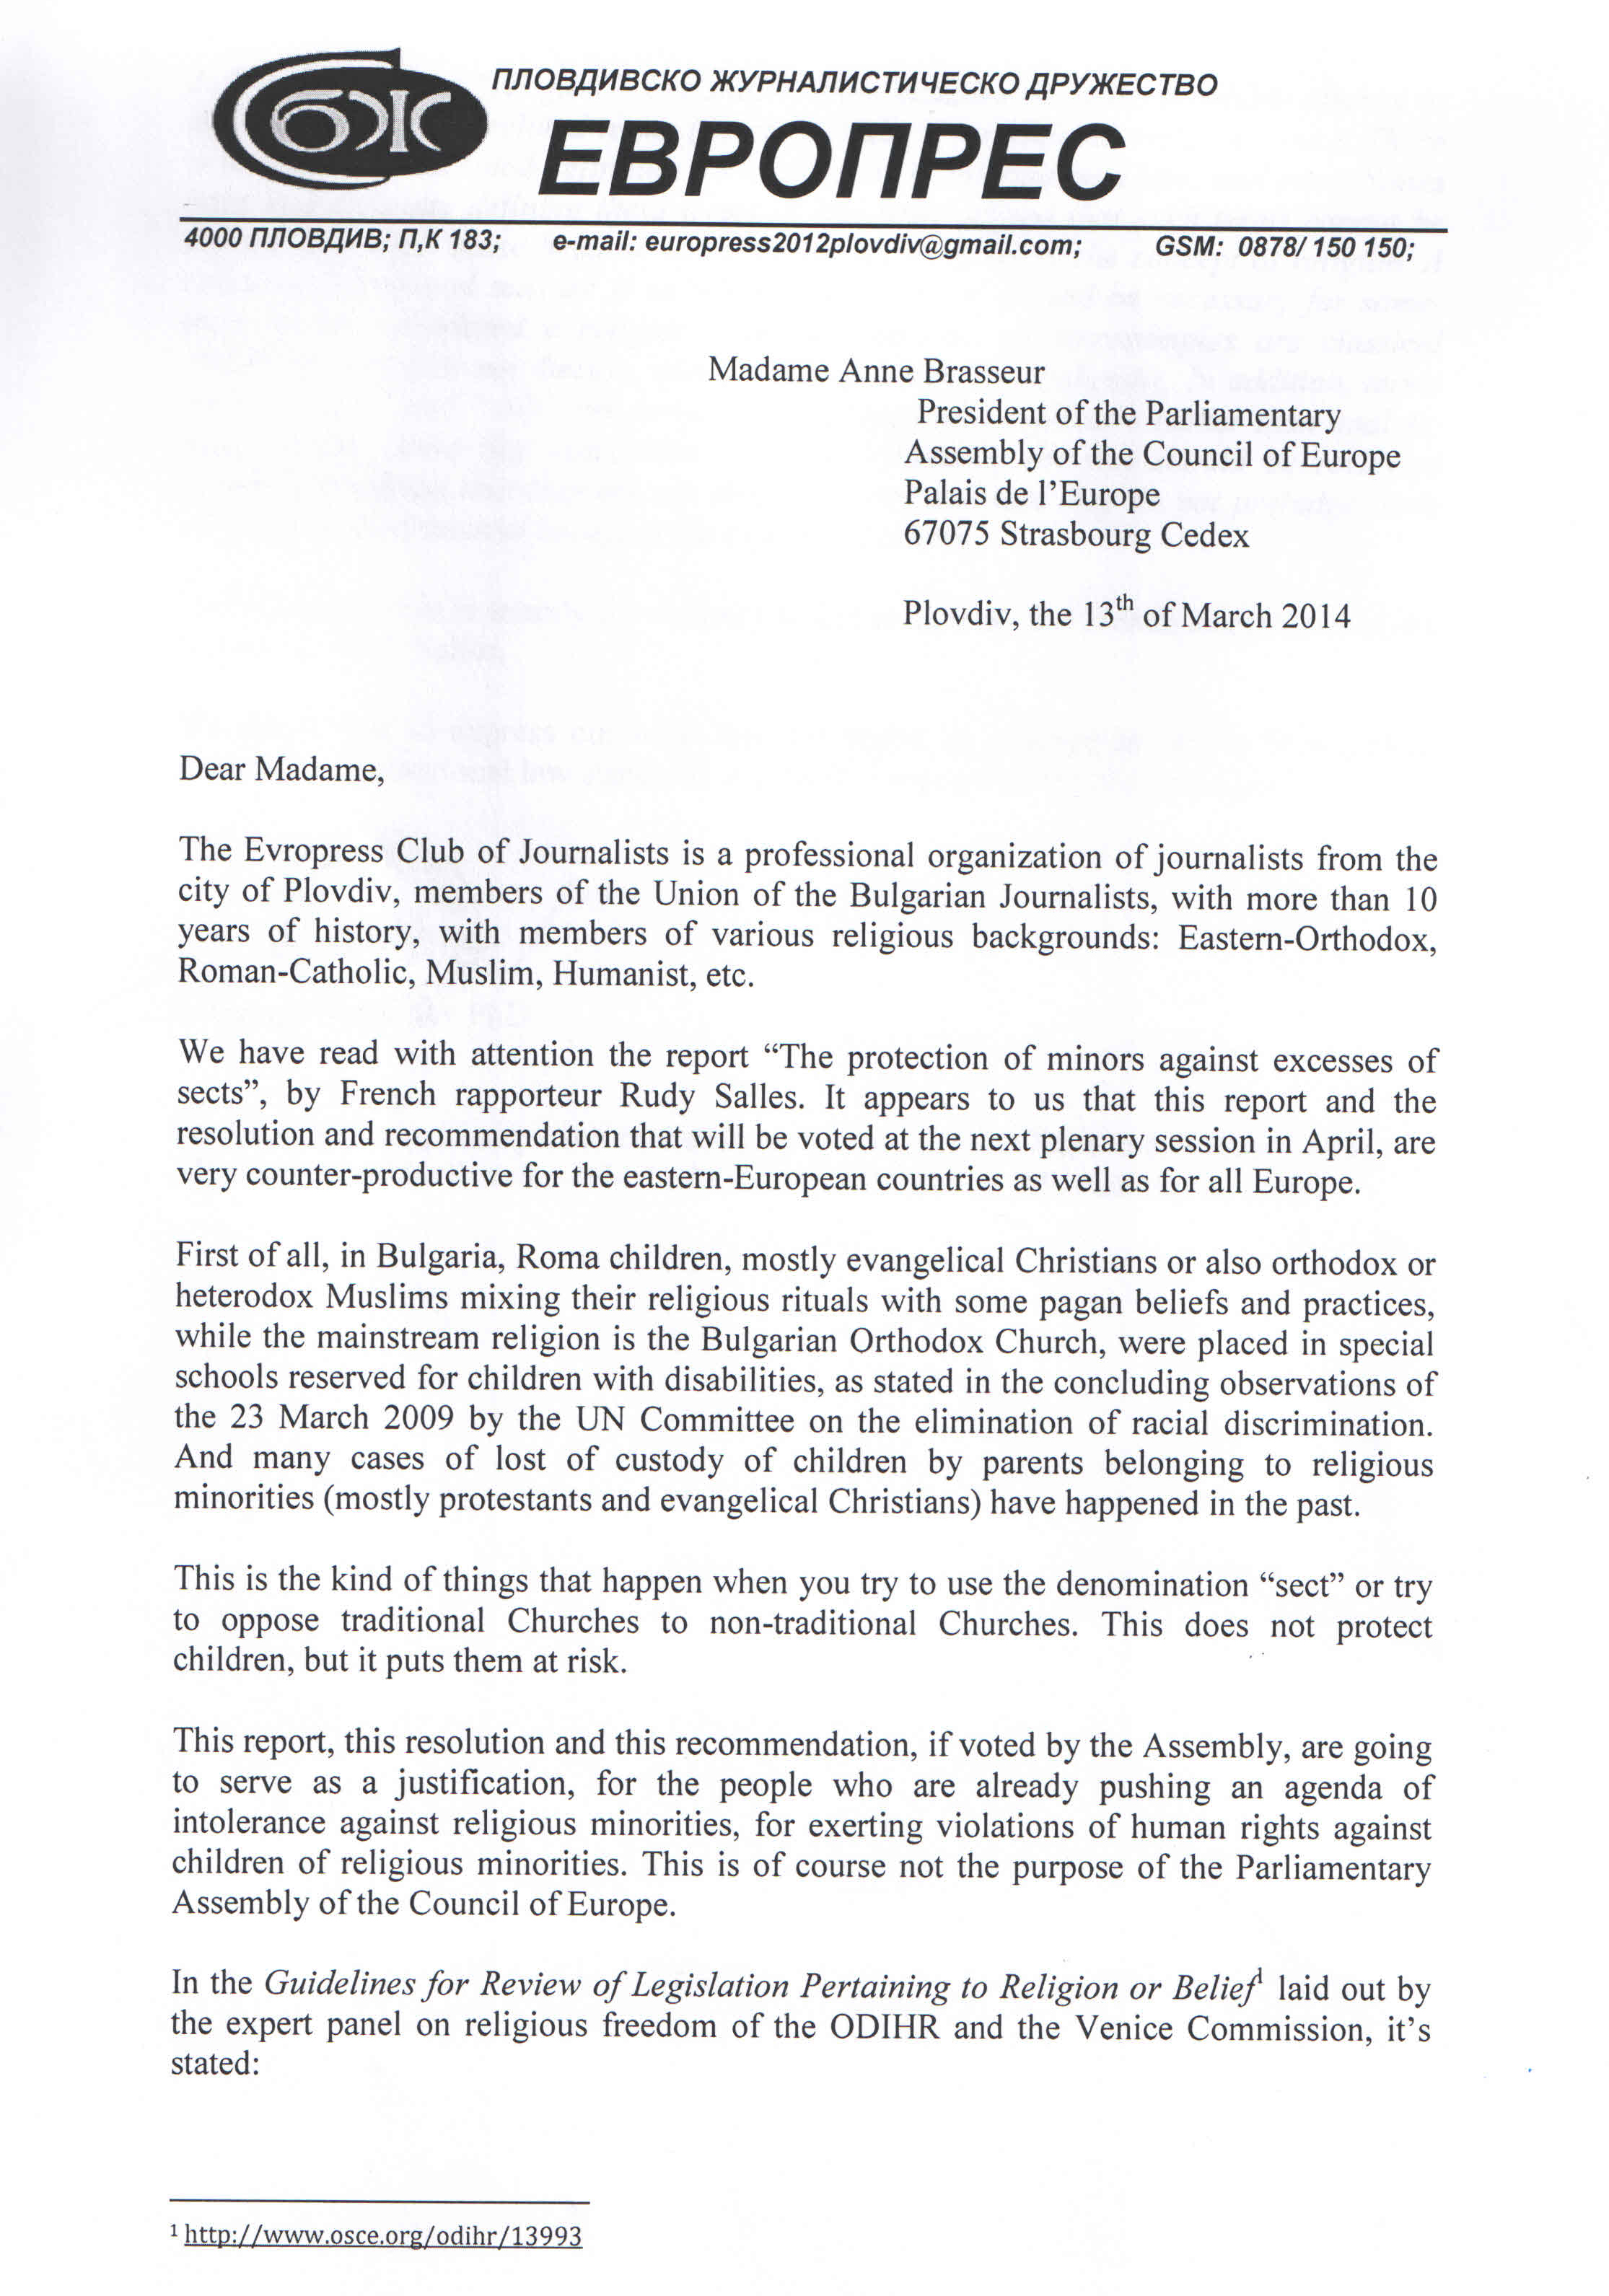 Bulgaria - Council of Europe, the Evropress Club of Journalists defends Freedom of Religion or Belief